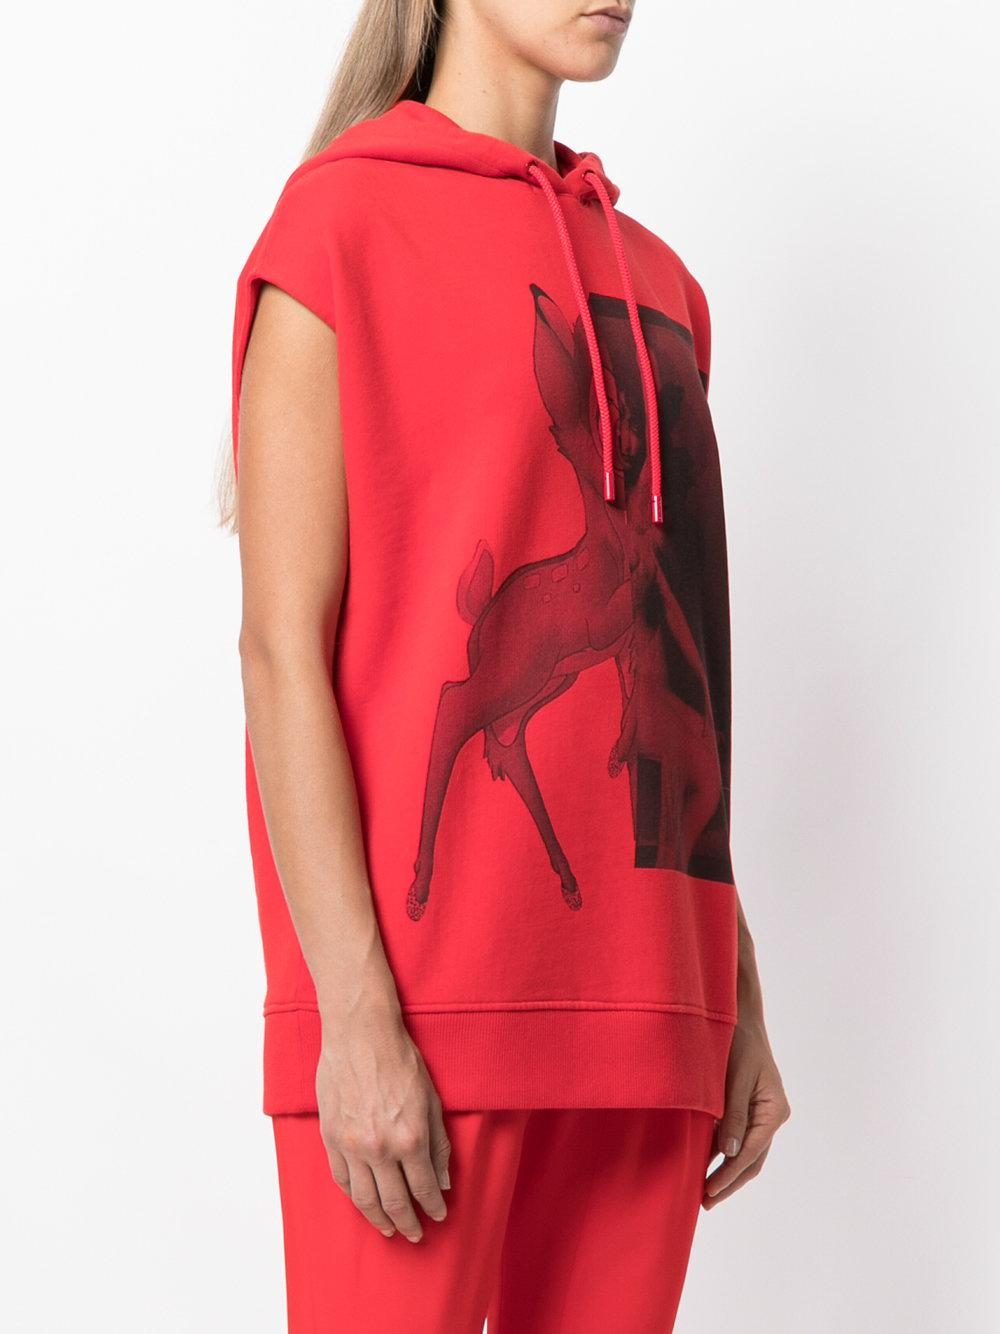 8dbbf4e8221bdc Lyst - Givenchy Bambi Print Sleeveless Hoodie in Red